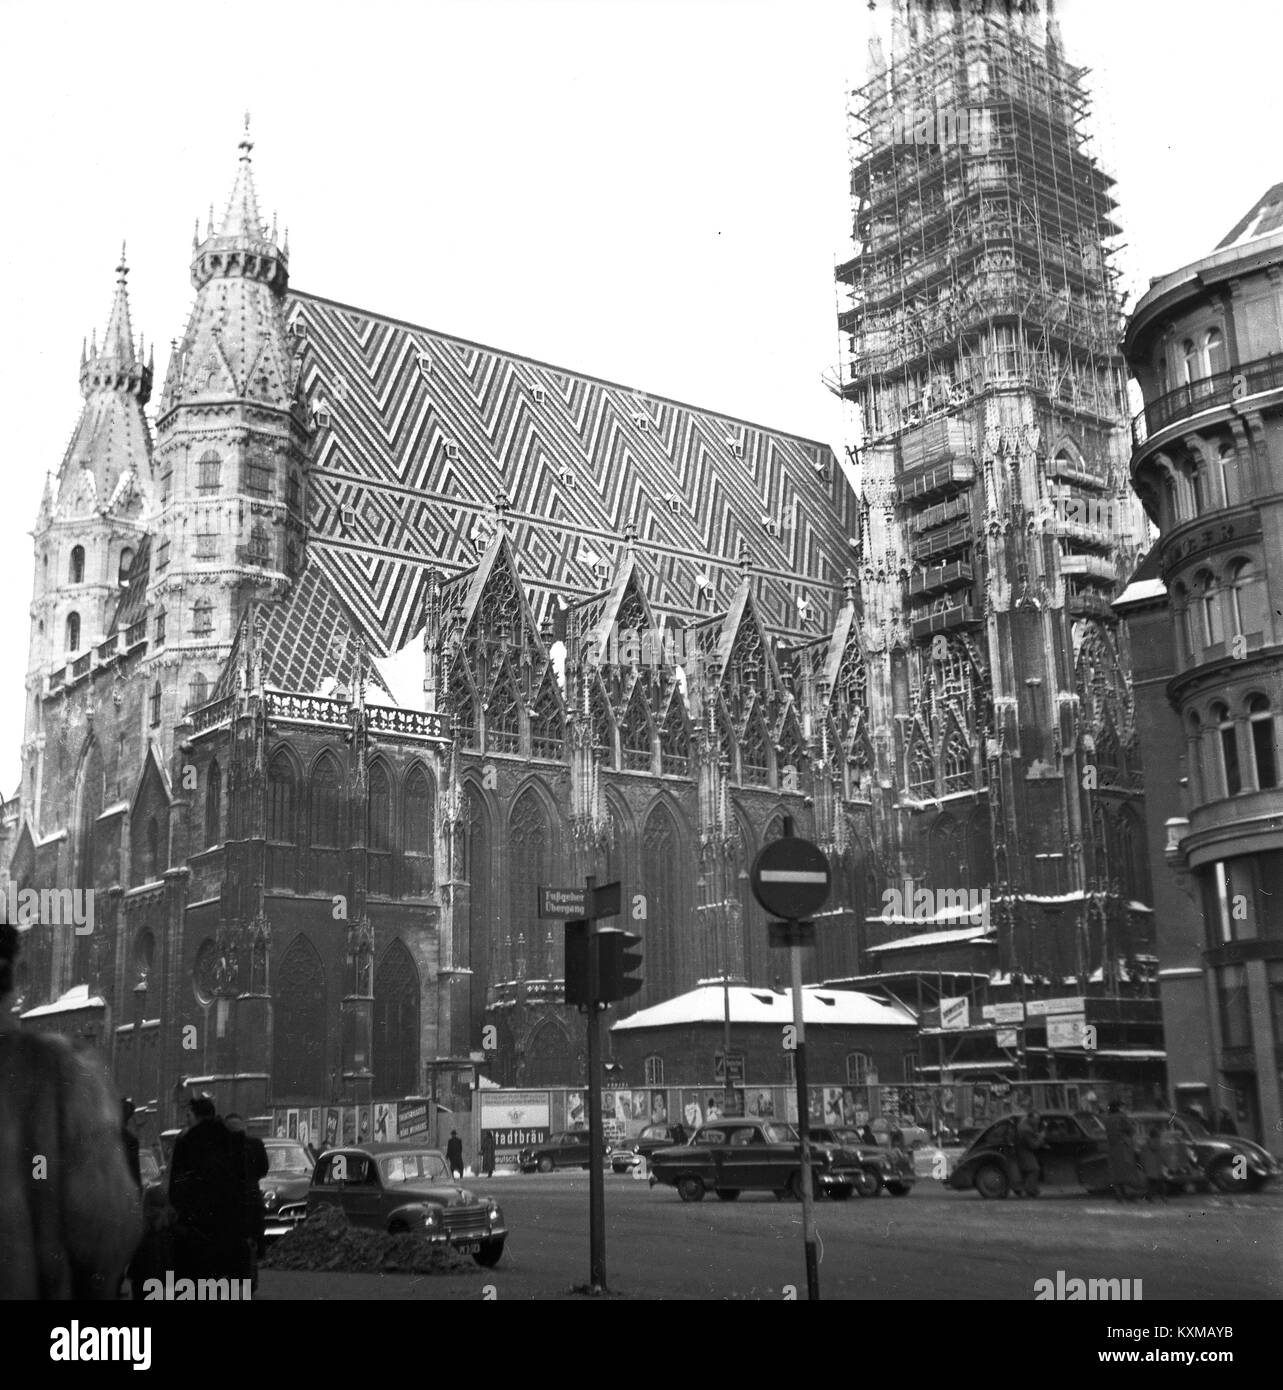 Vienna 1956 restoration from World War Two bombing on St. Stephen's Cathedral, Vienna Europe in 1956 - Stock Image